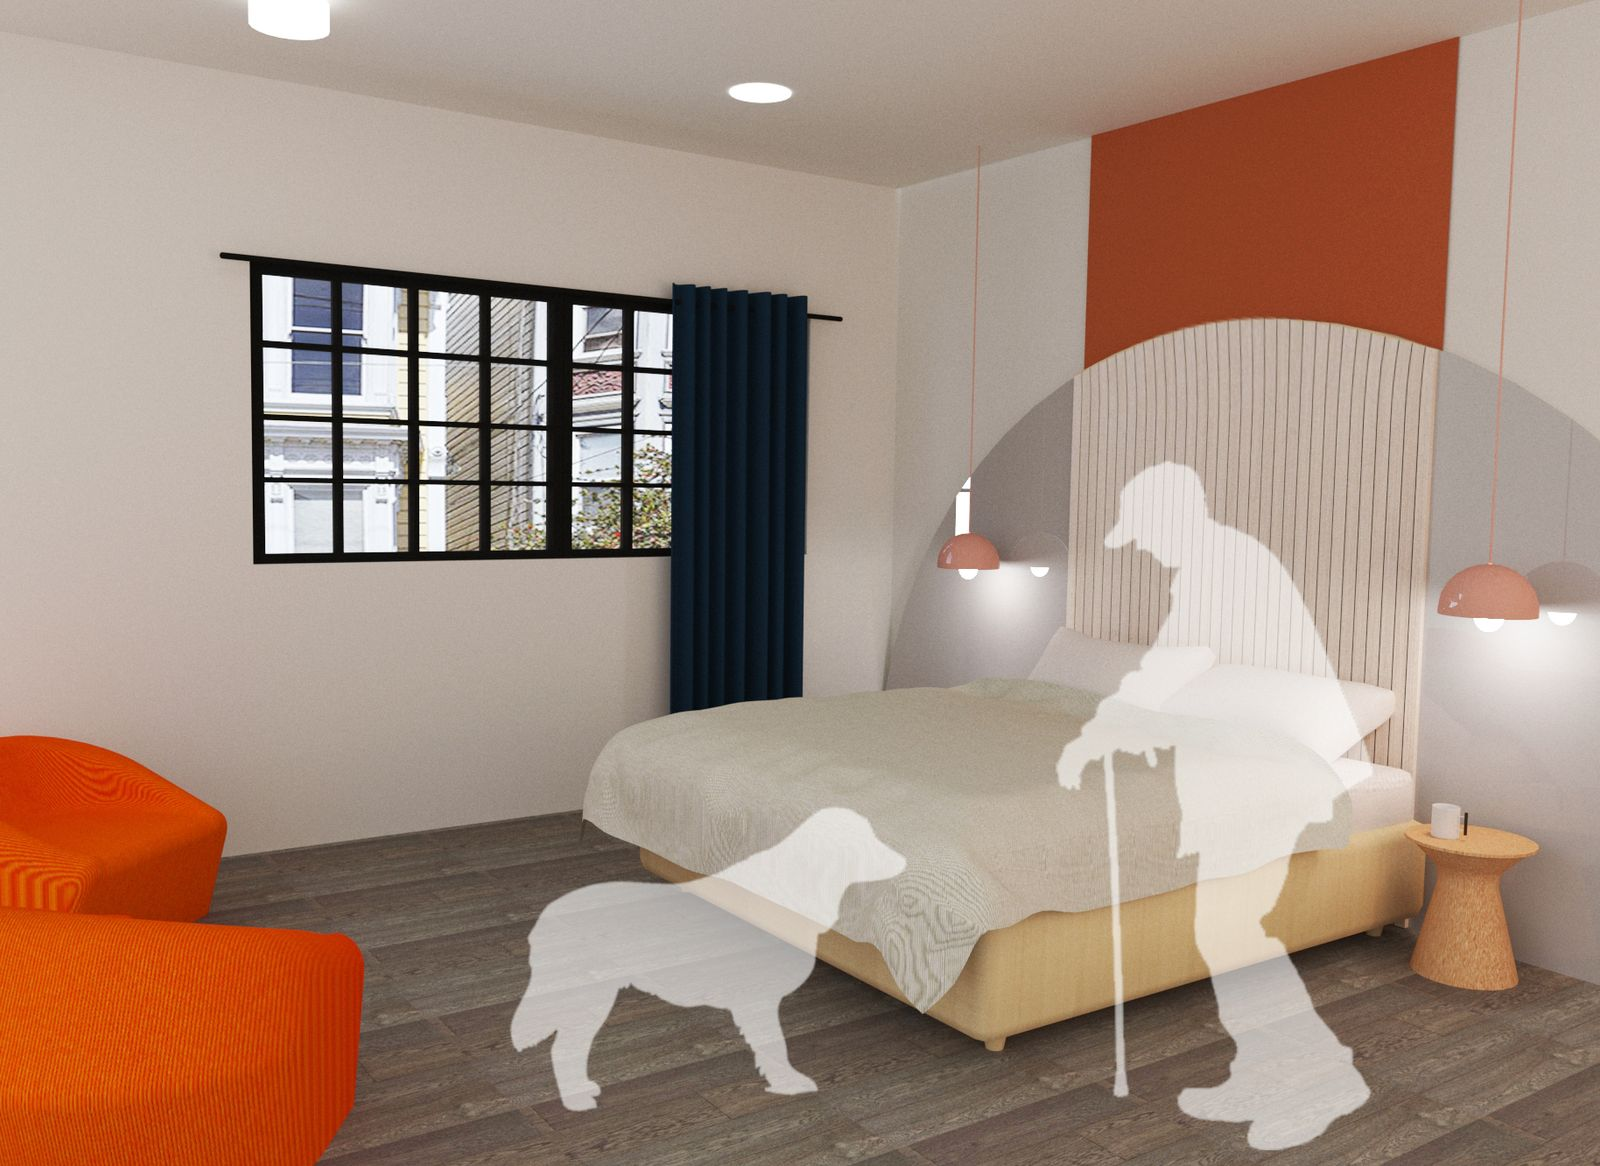 The Crossroads Residential Community - Bedroom